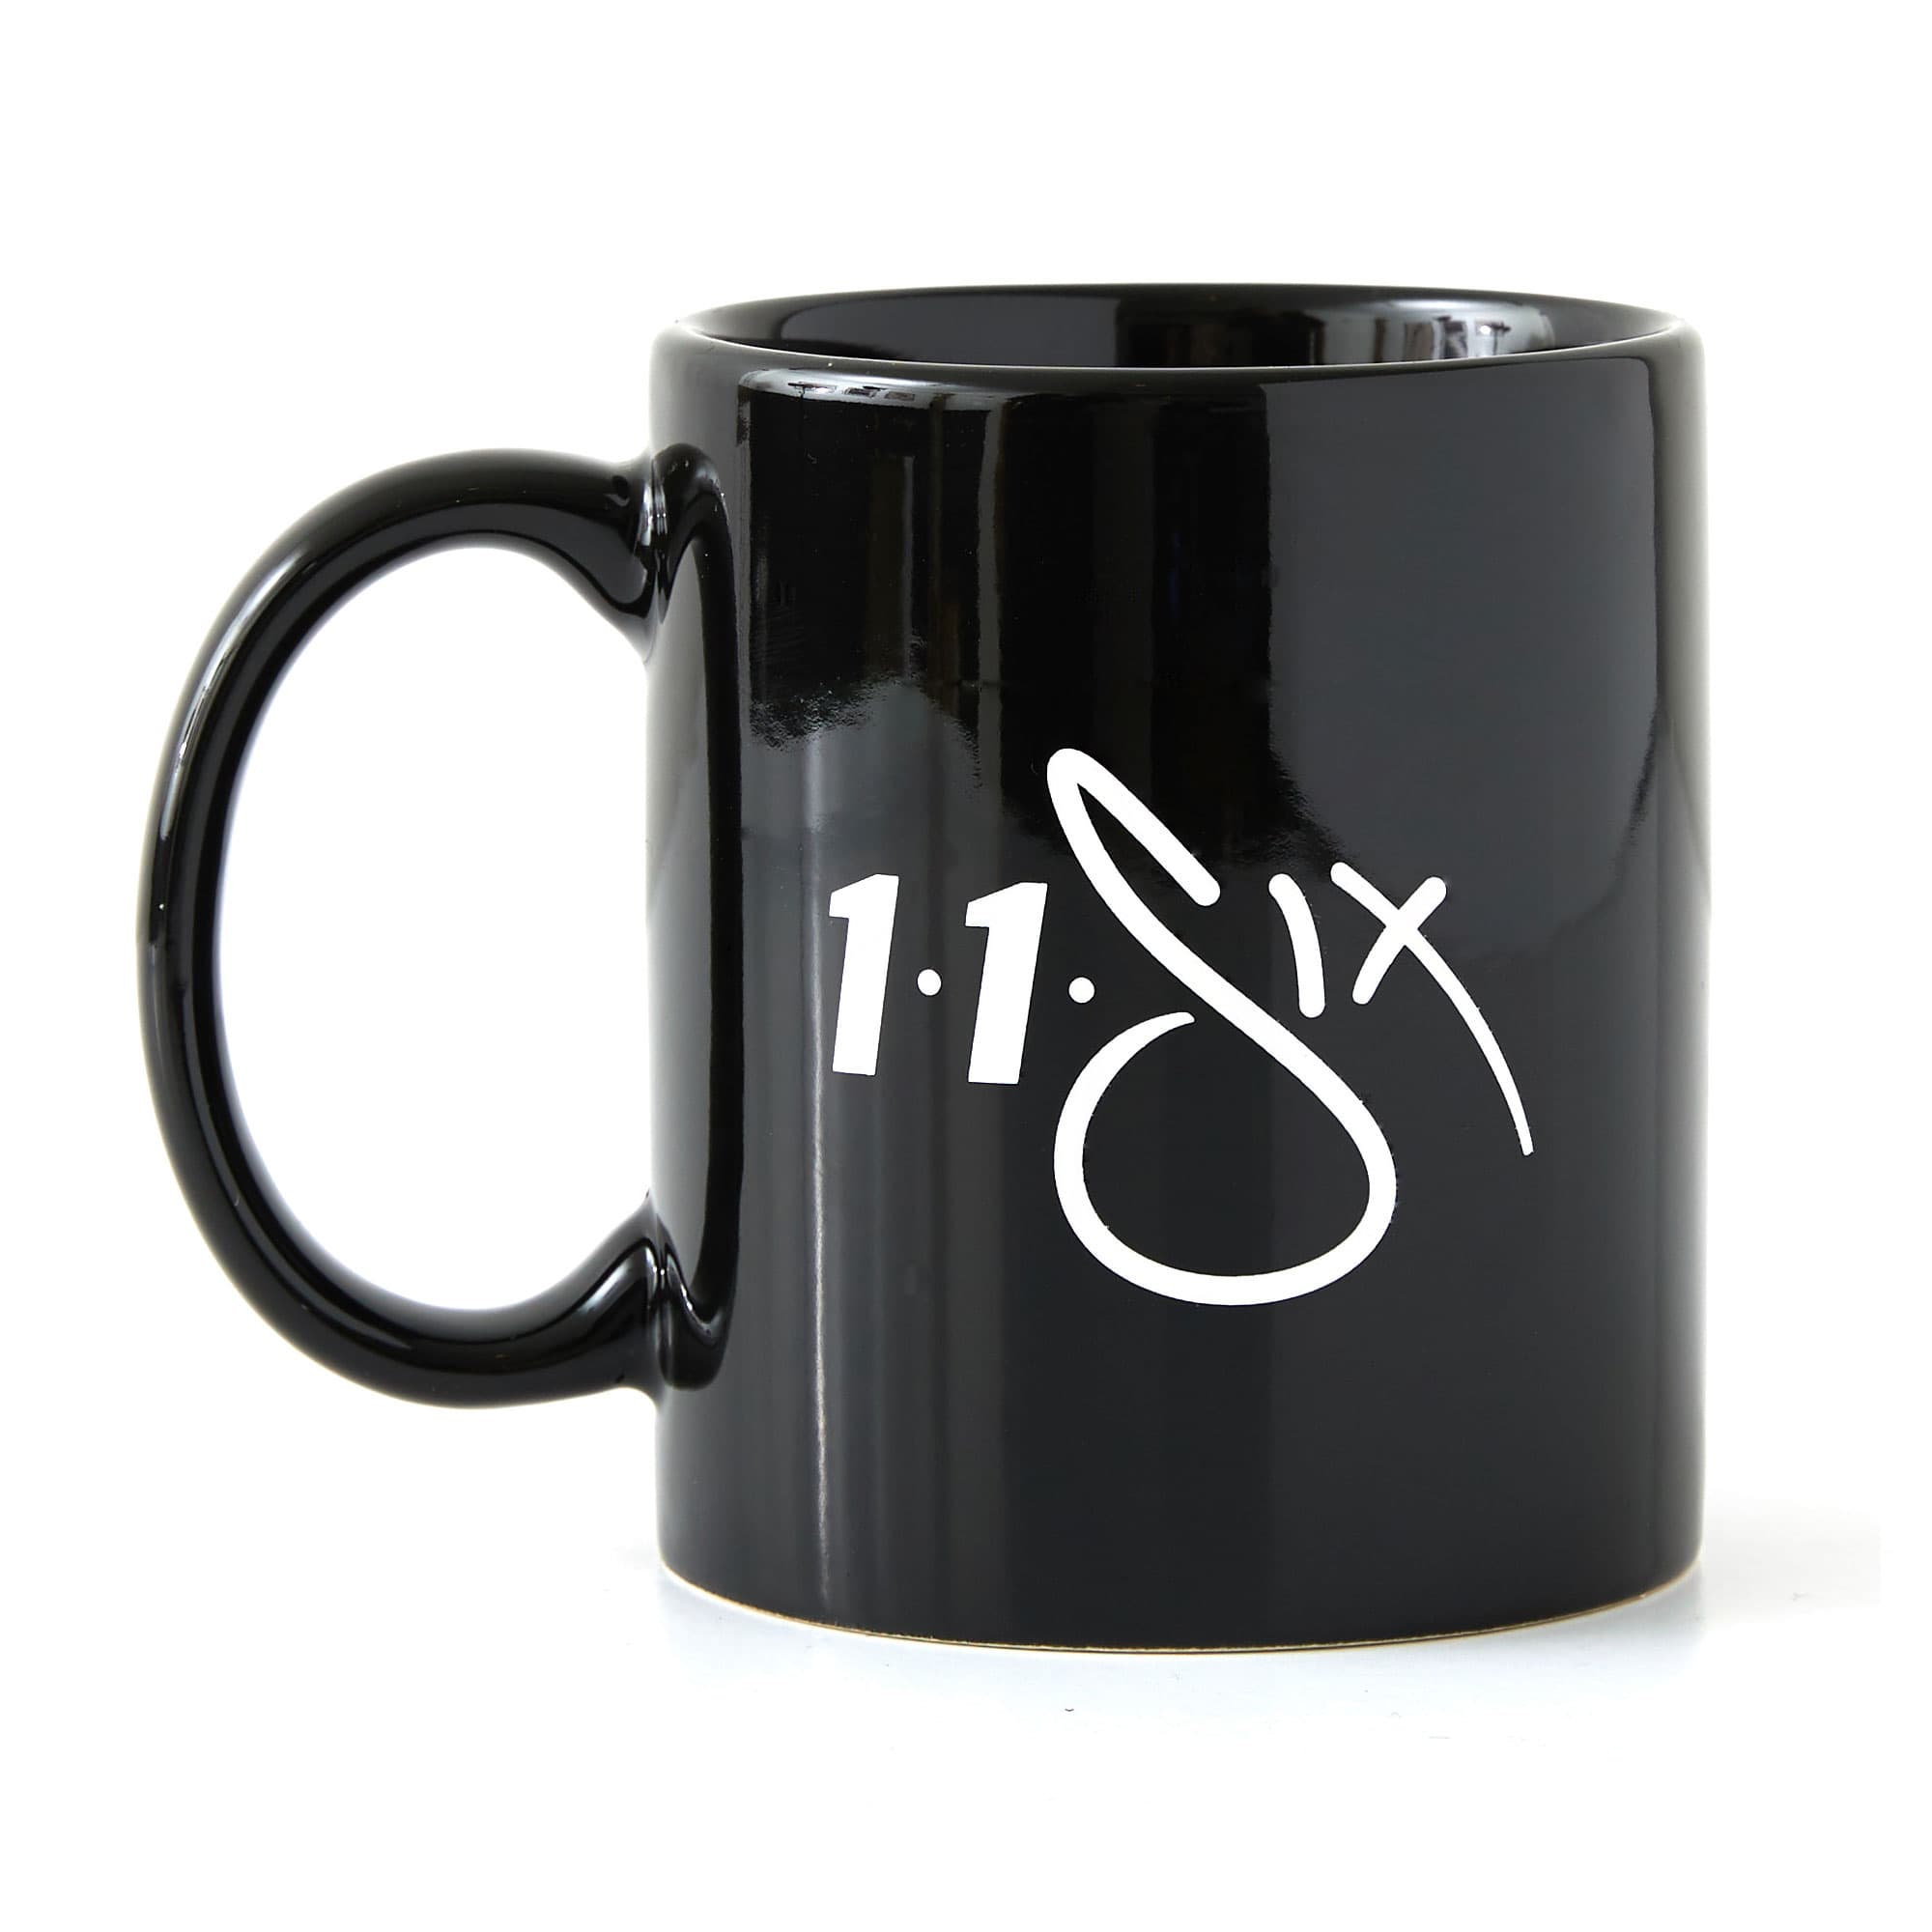 116 Red Label Mug